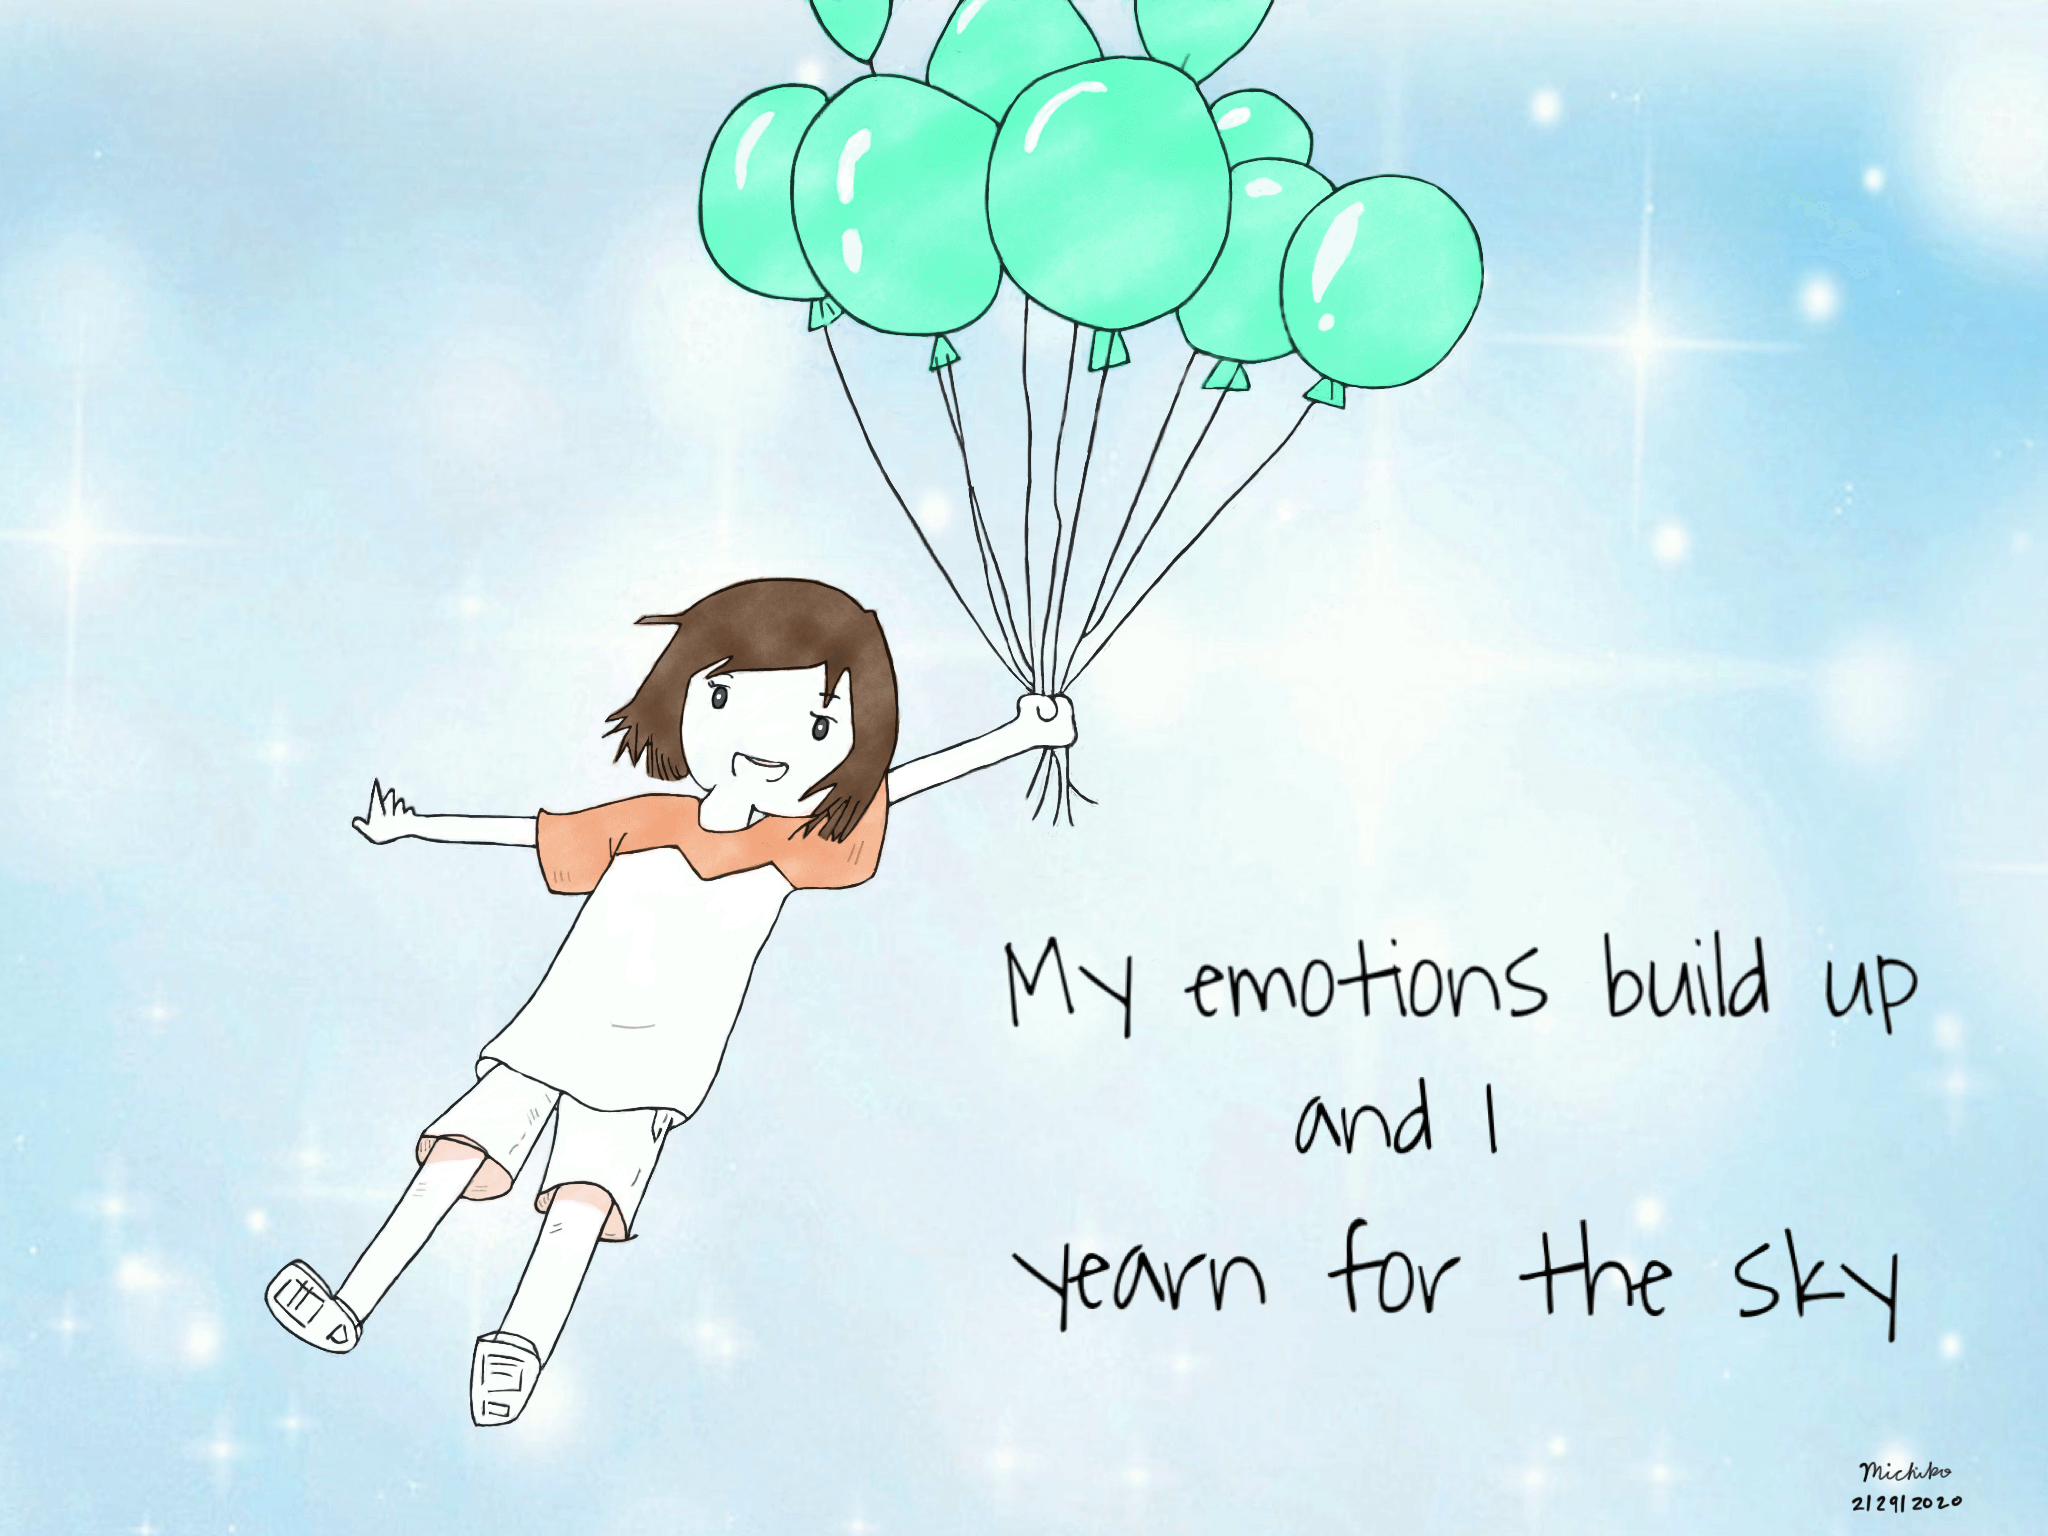 Flying in the sky with balloons